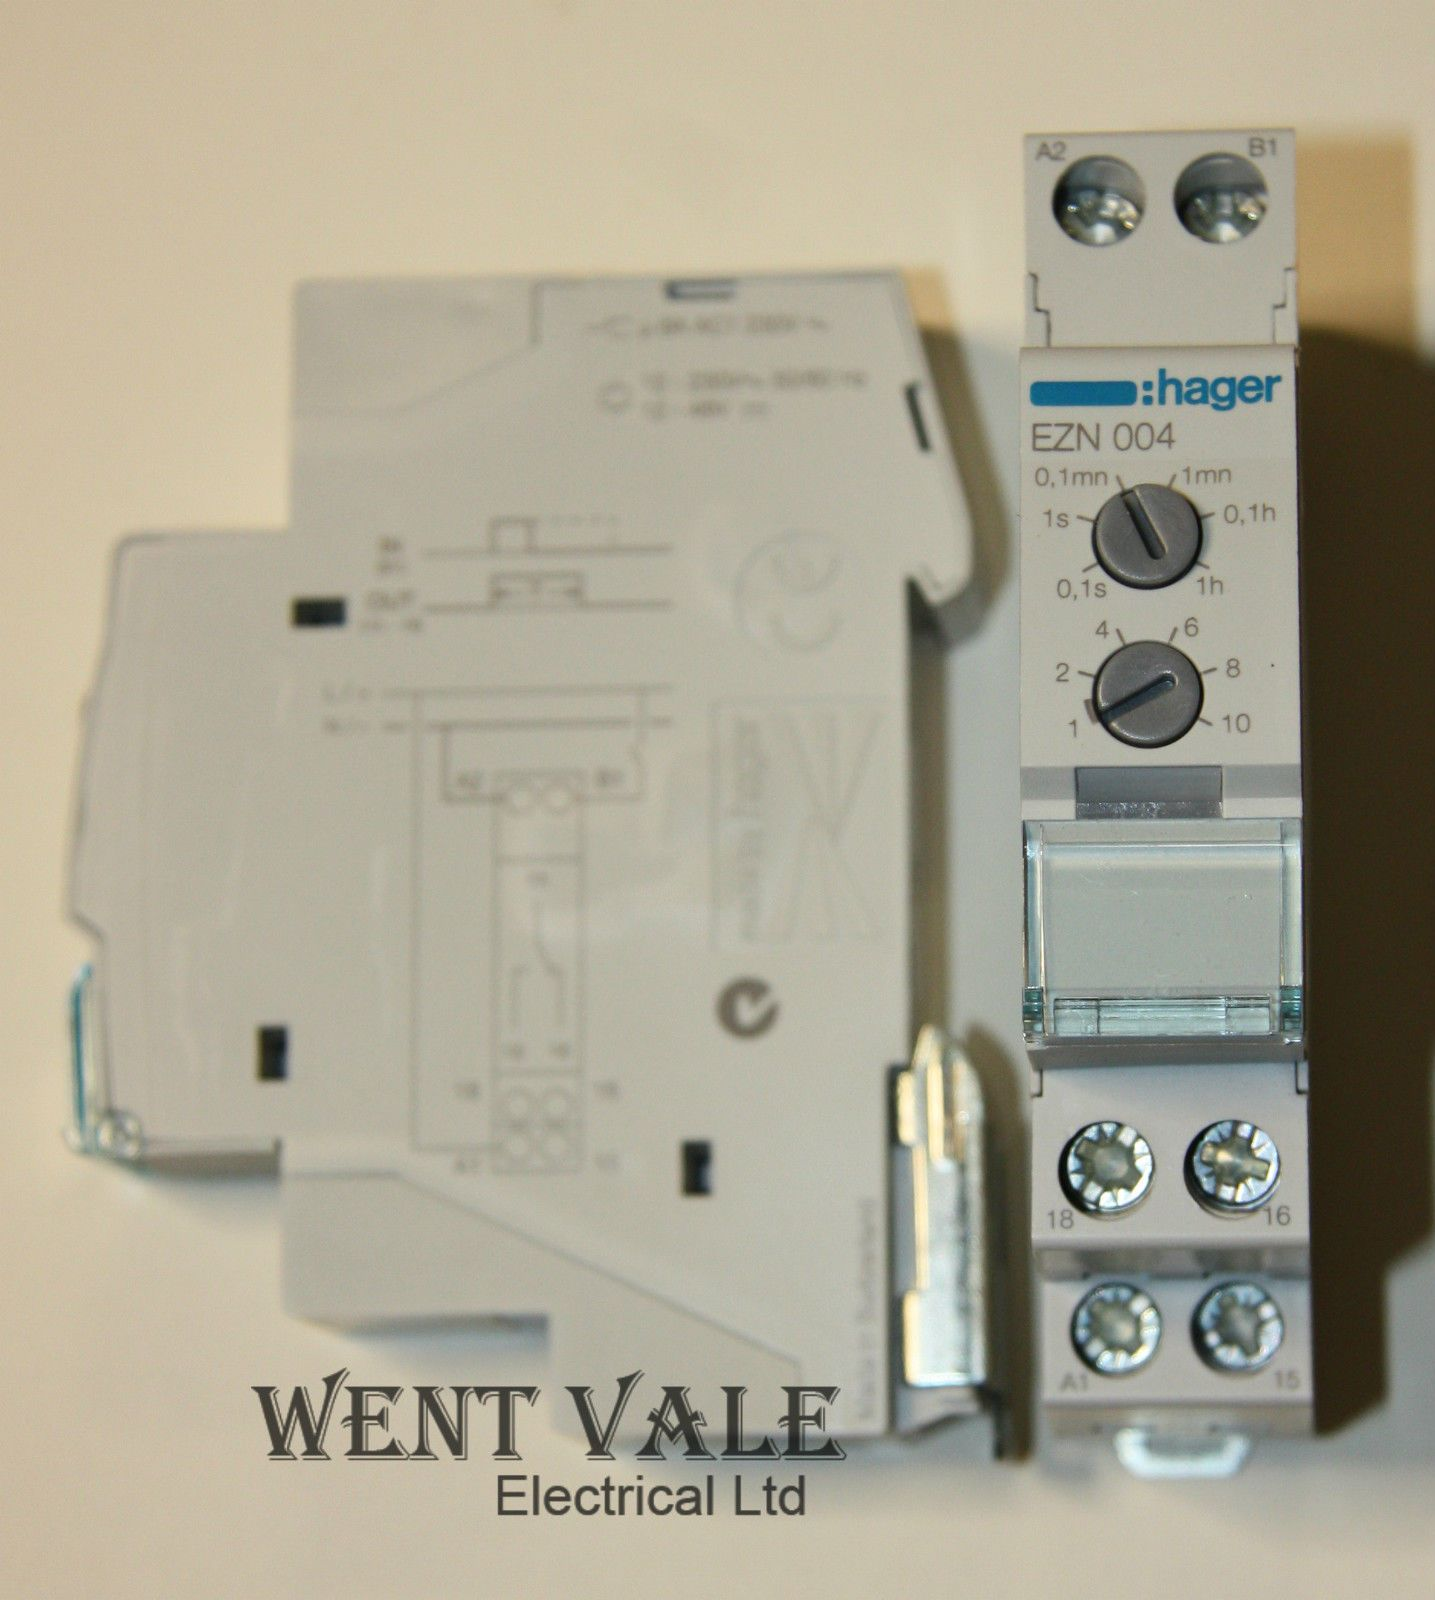 off delay timer wiring diagram hdmi to tv not working hager ezn004 relay new in box